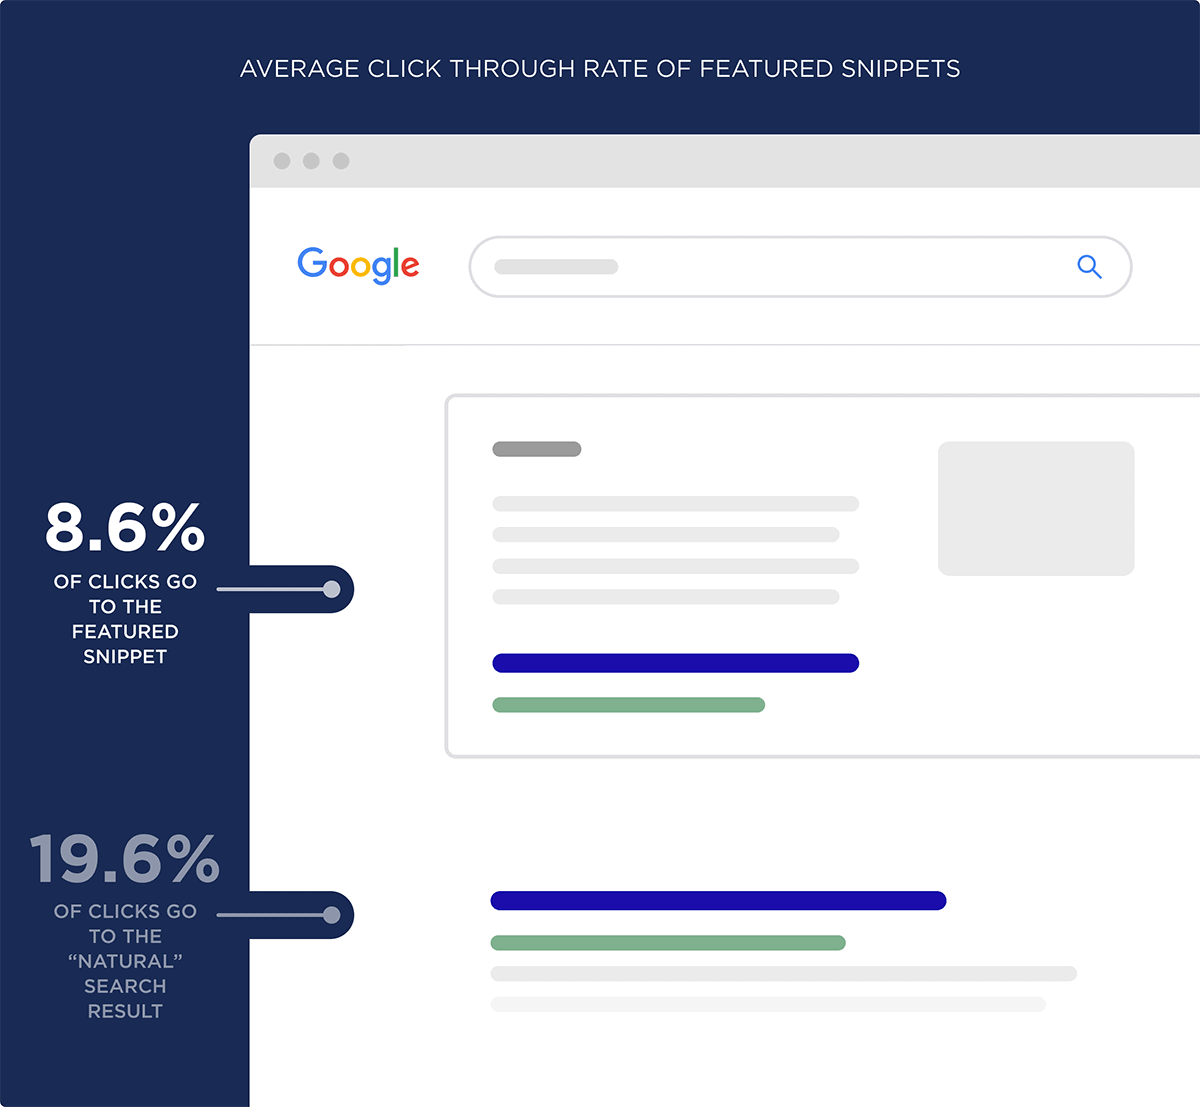 Average click through rate of Featured Snippets